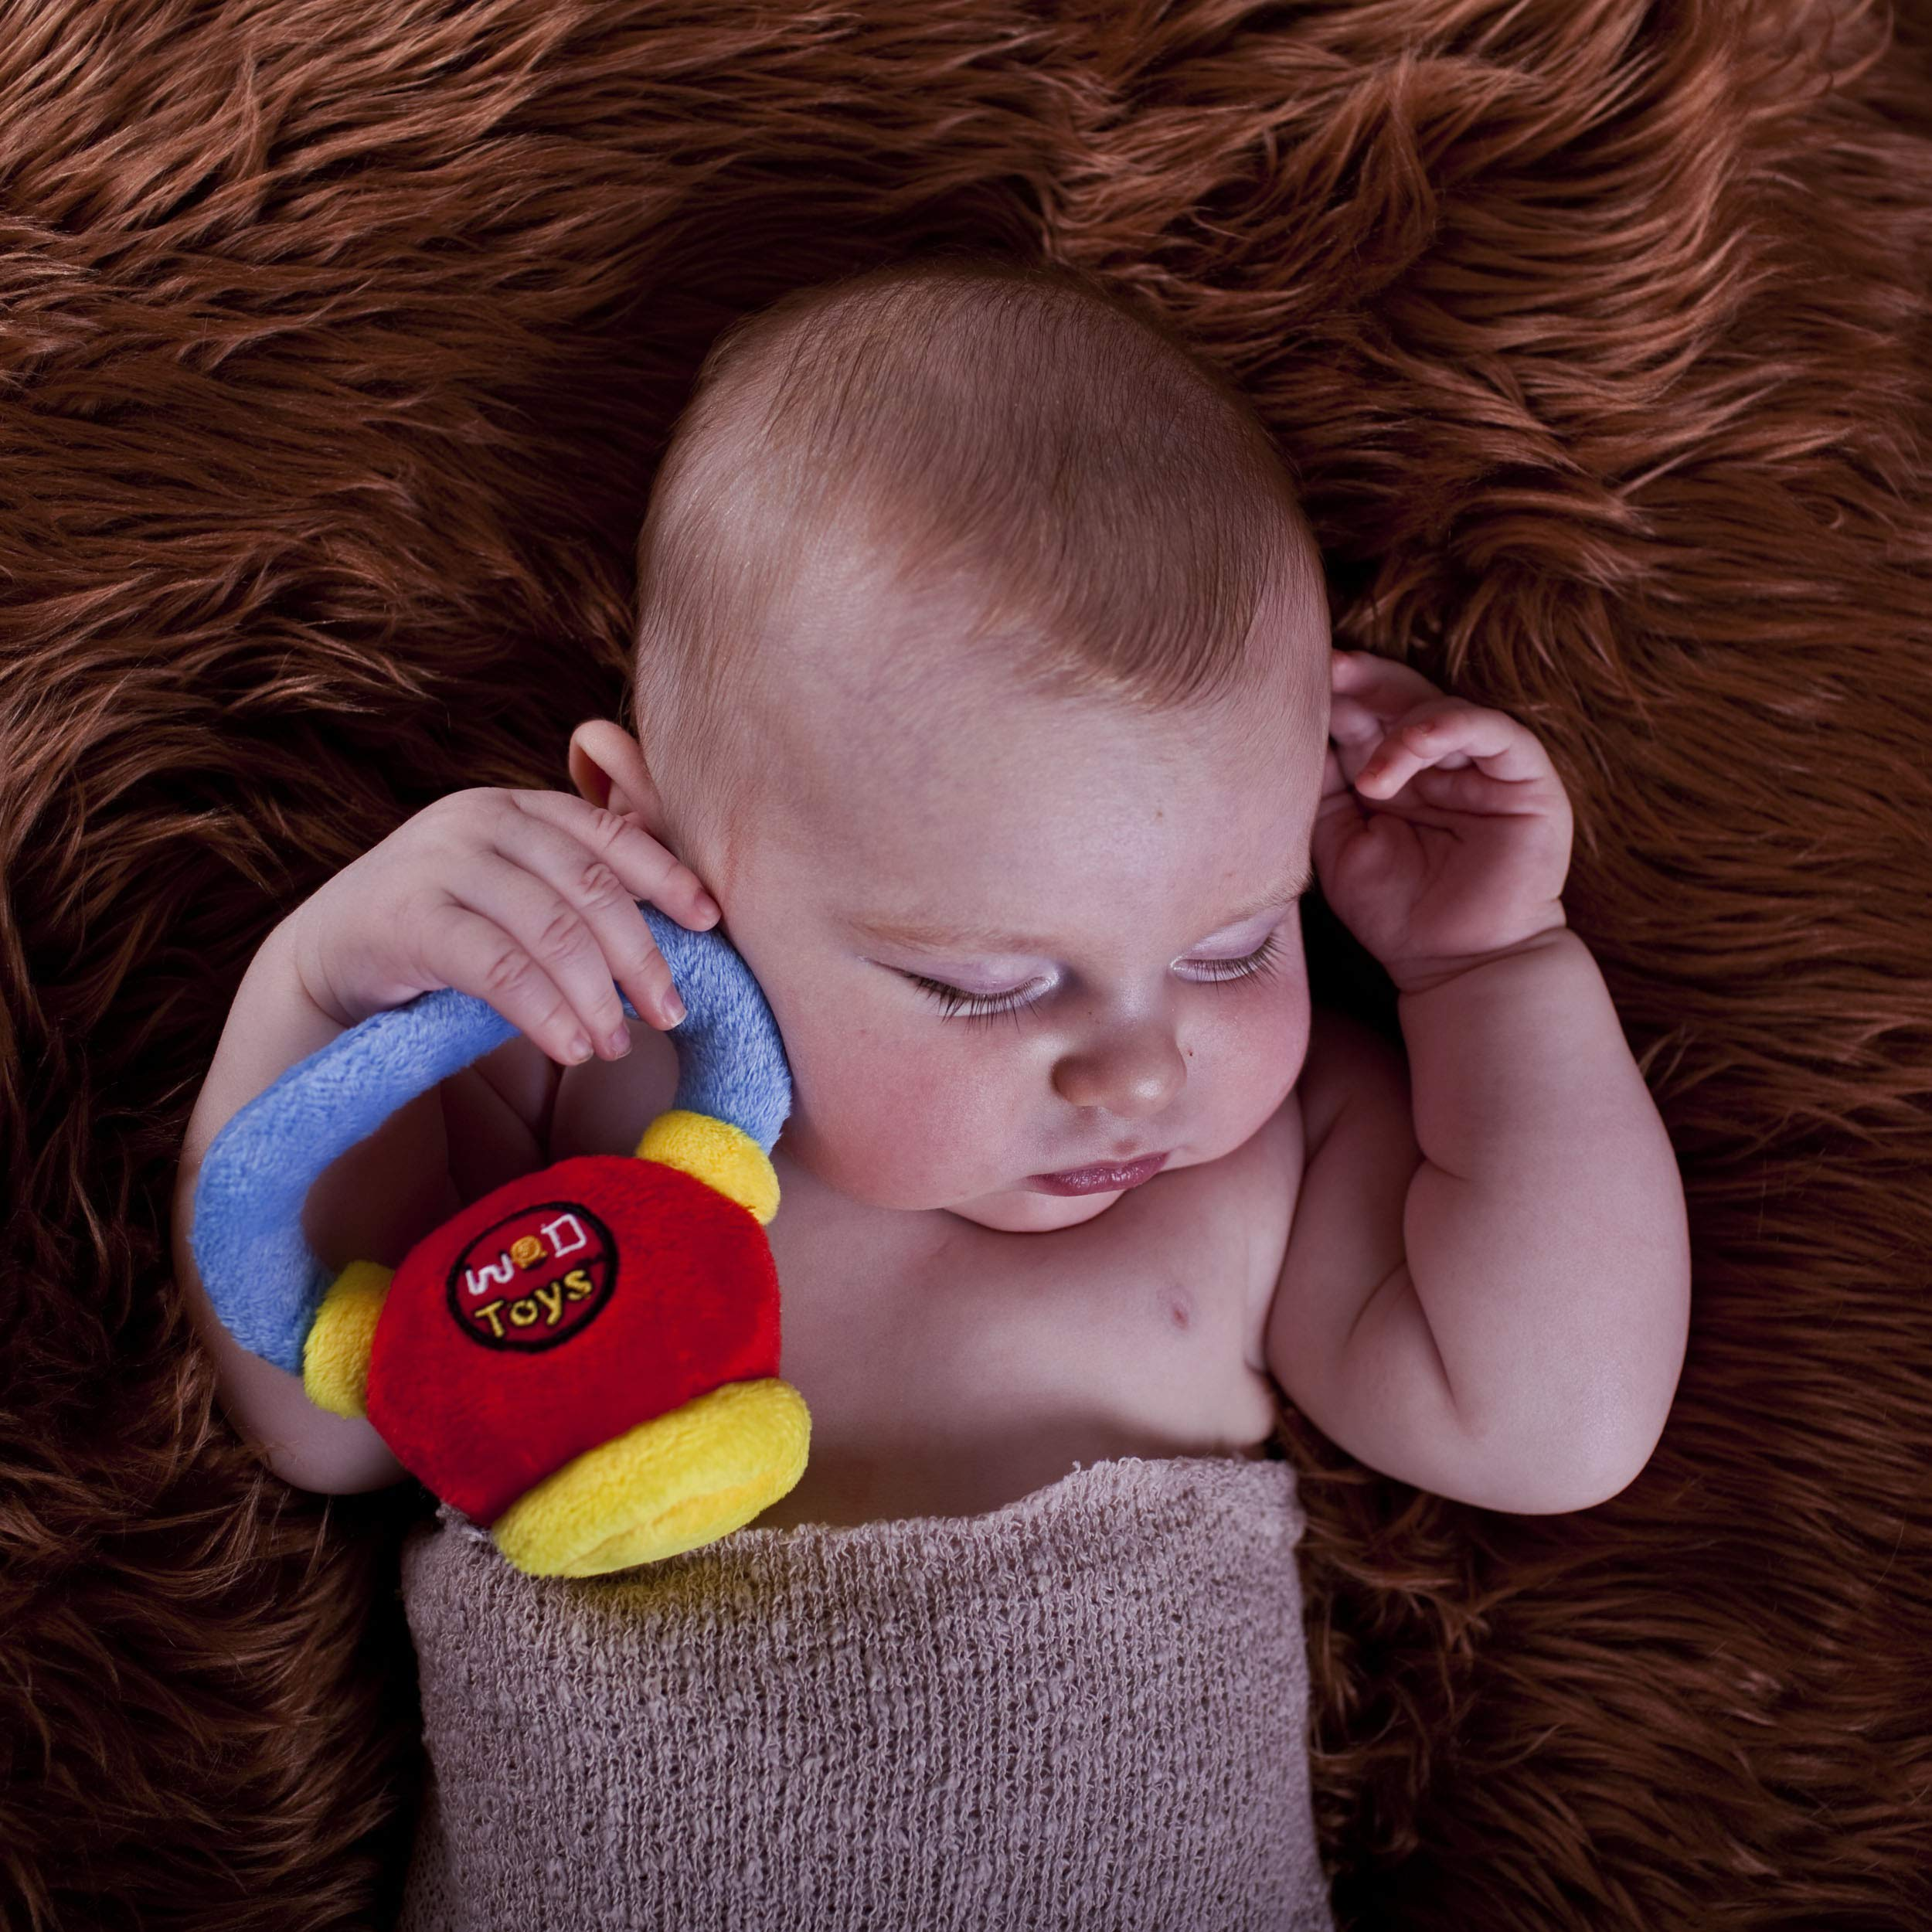 Infants and Babies WOD Toys Baby Barbell Plush with Rattle Toy for Newborns